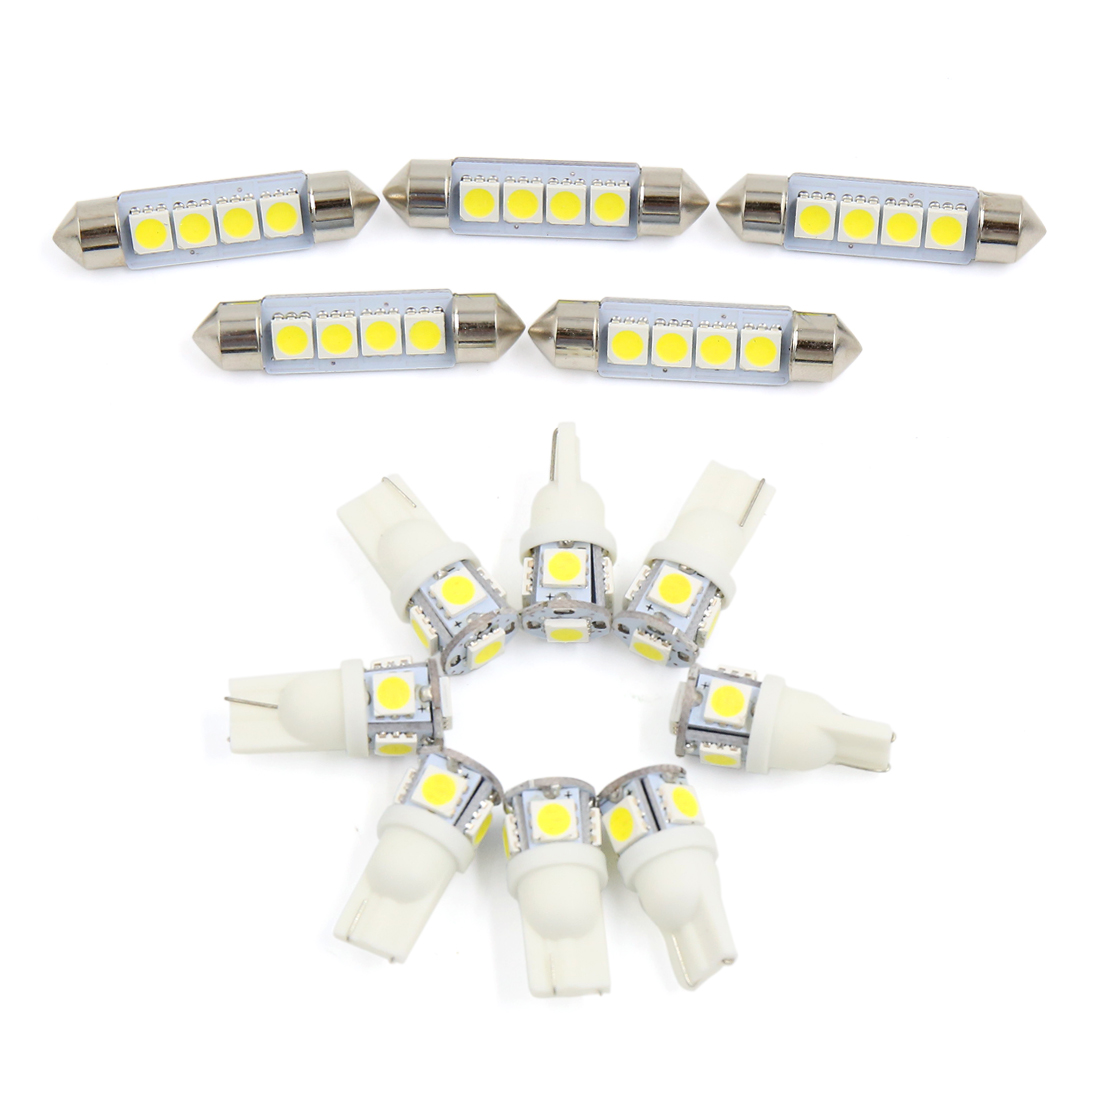 13x for Ford F150 4 DOOR 2004-2012 White Car Interior Dome Map LED Light Kit